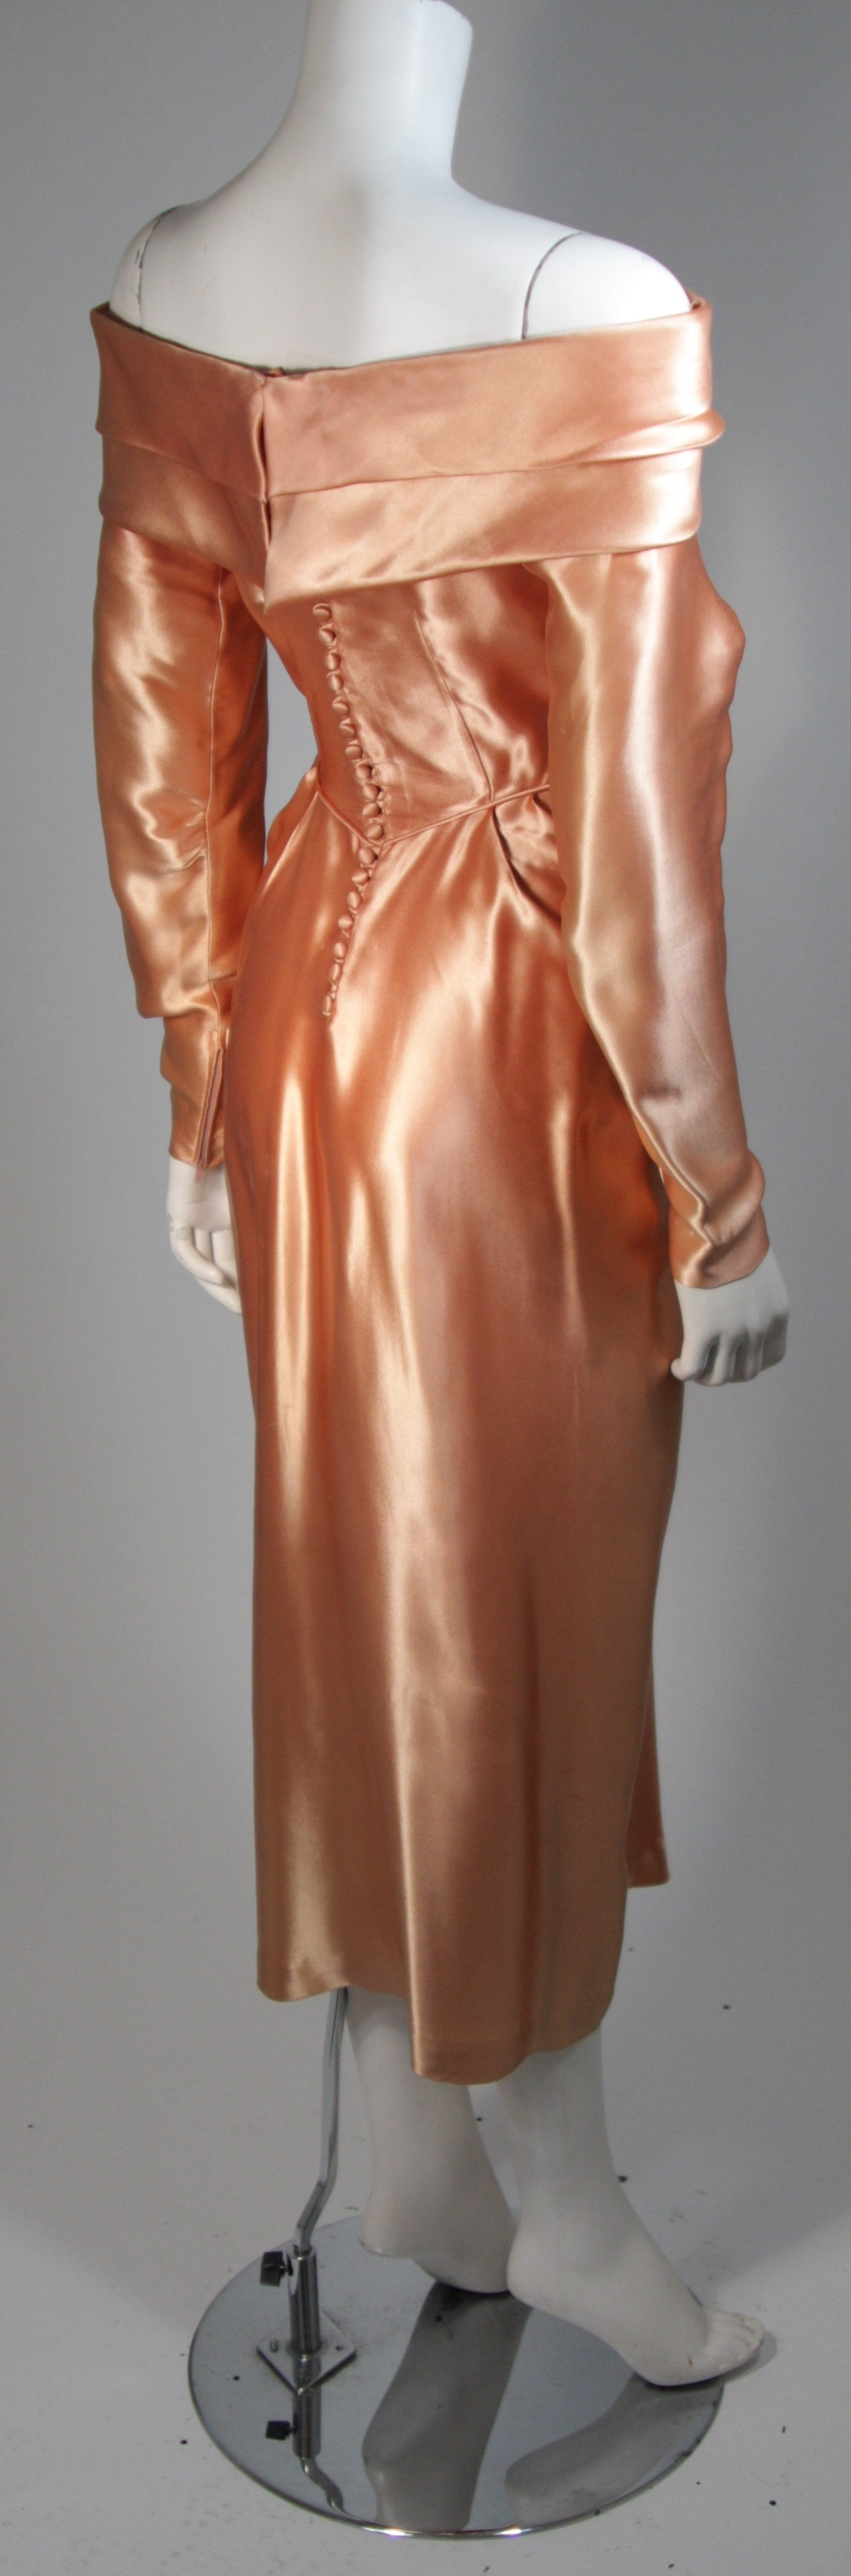 Ceil Chapman Draped Silk Gown in a Peach Champagne Hue Size 4-6 For Sale 2